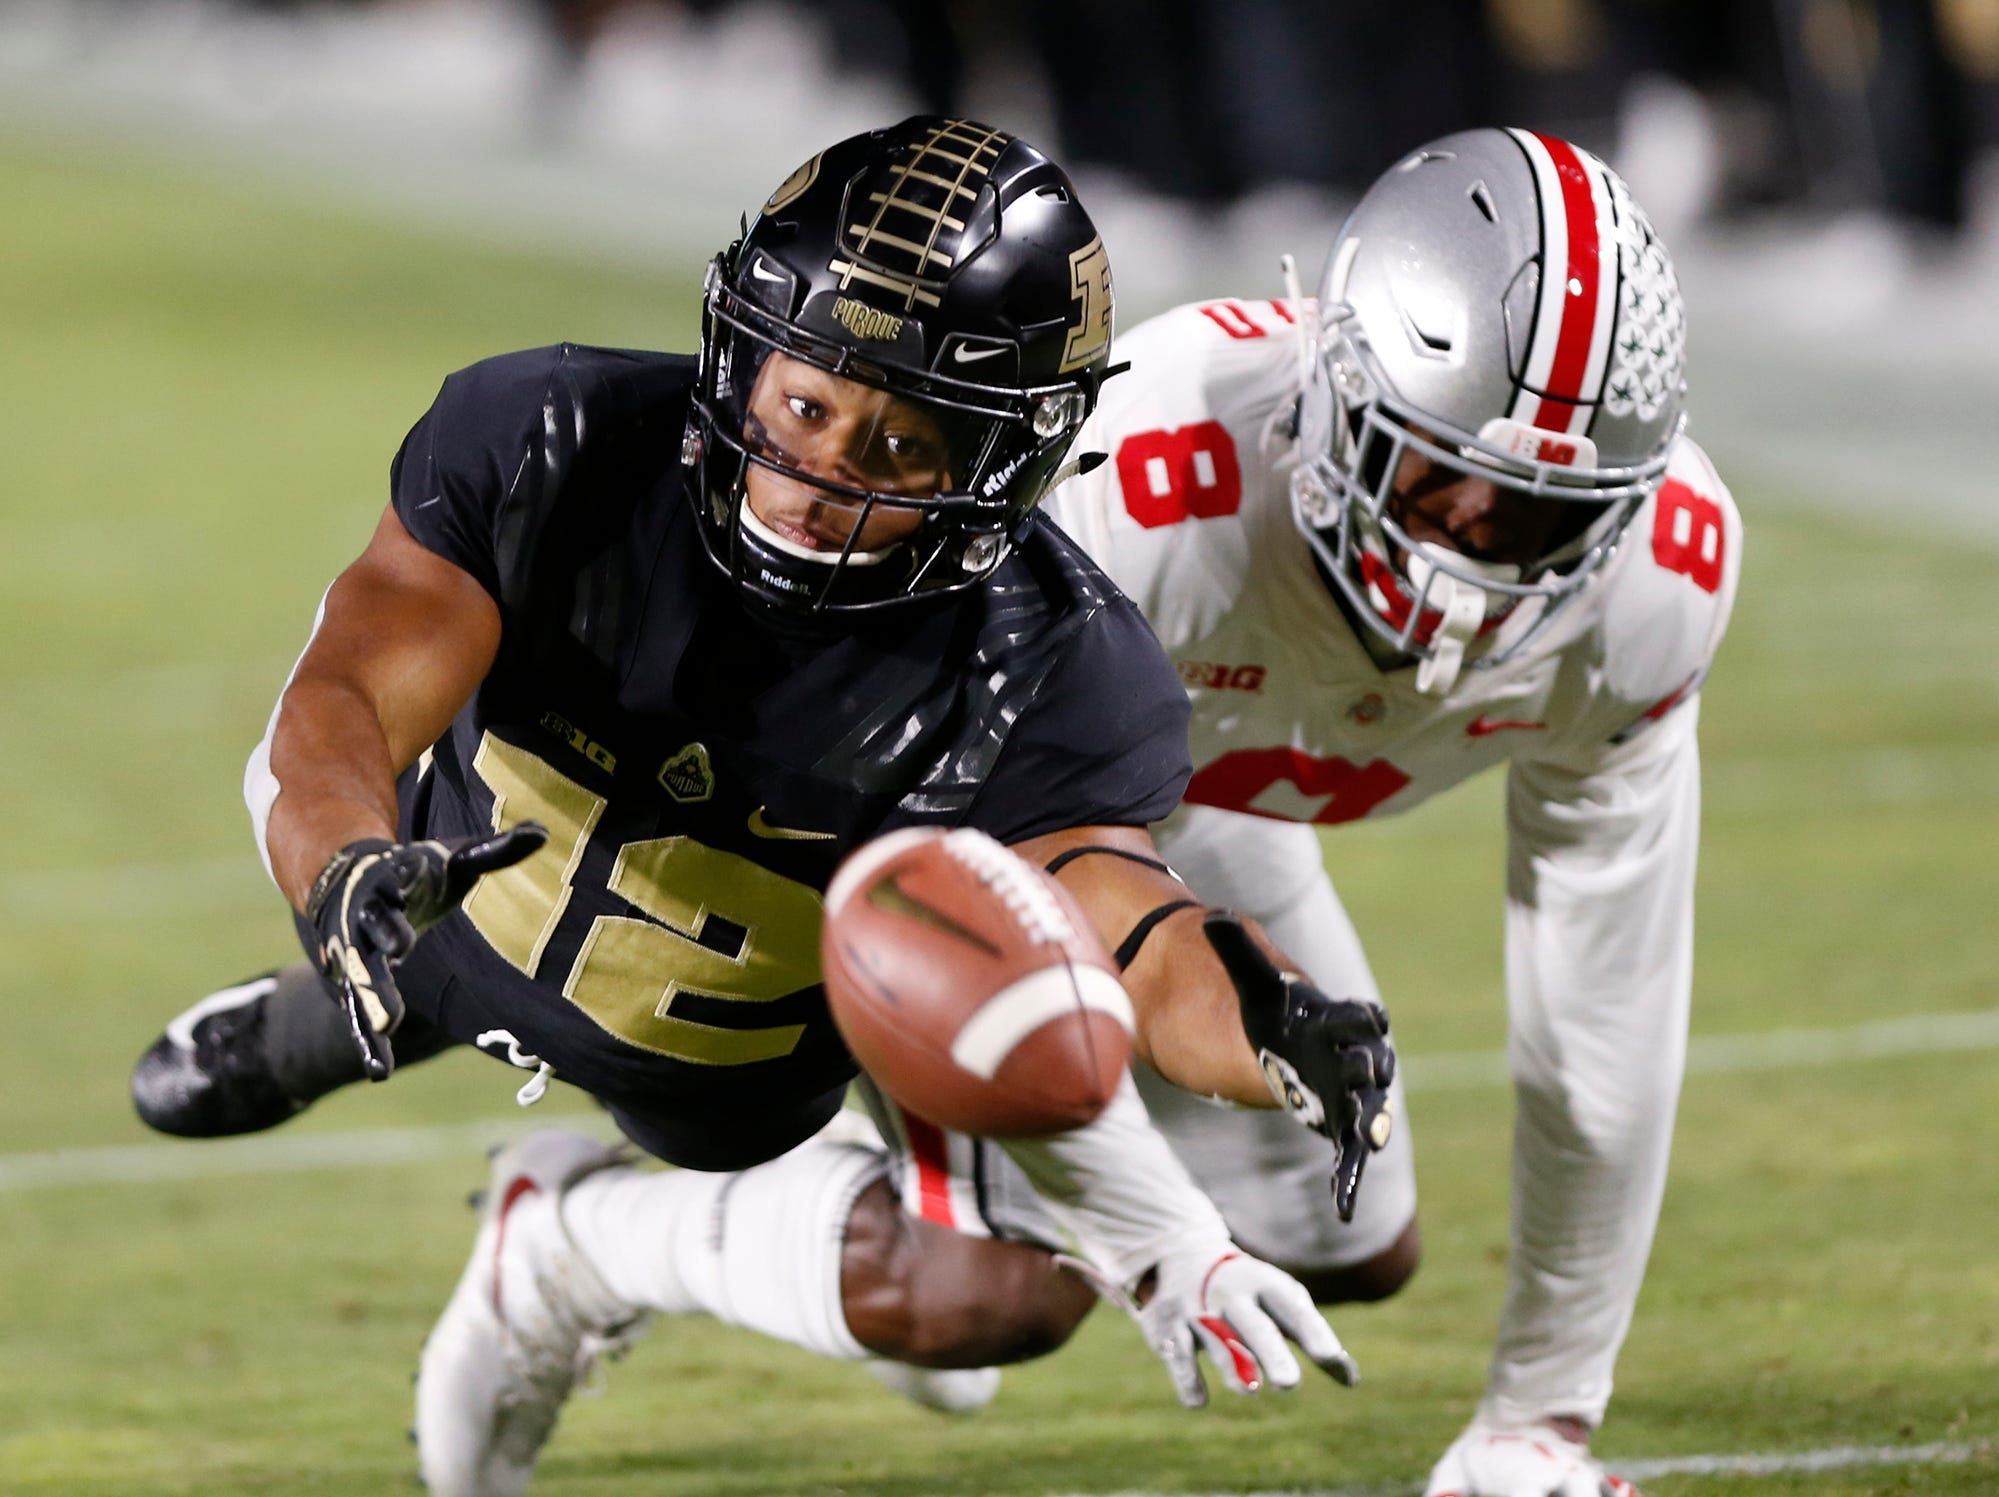 Jared Sparks of Purdue is whistled for offensive pass interference as he tries to make a catch against Kendall Sheffield of Ohio State in the first half Saturday, October 20, 2018, at Ross-Ade Stadium. Purdue upset No. 2 ranked Ohio State 49-20.